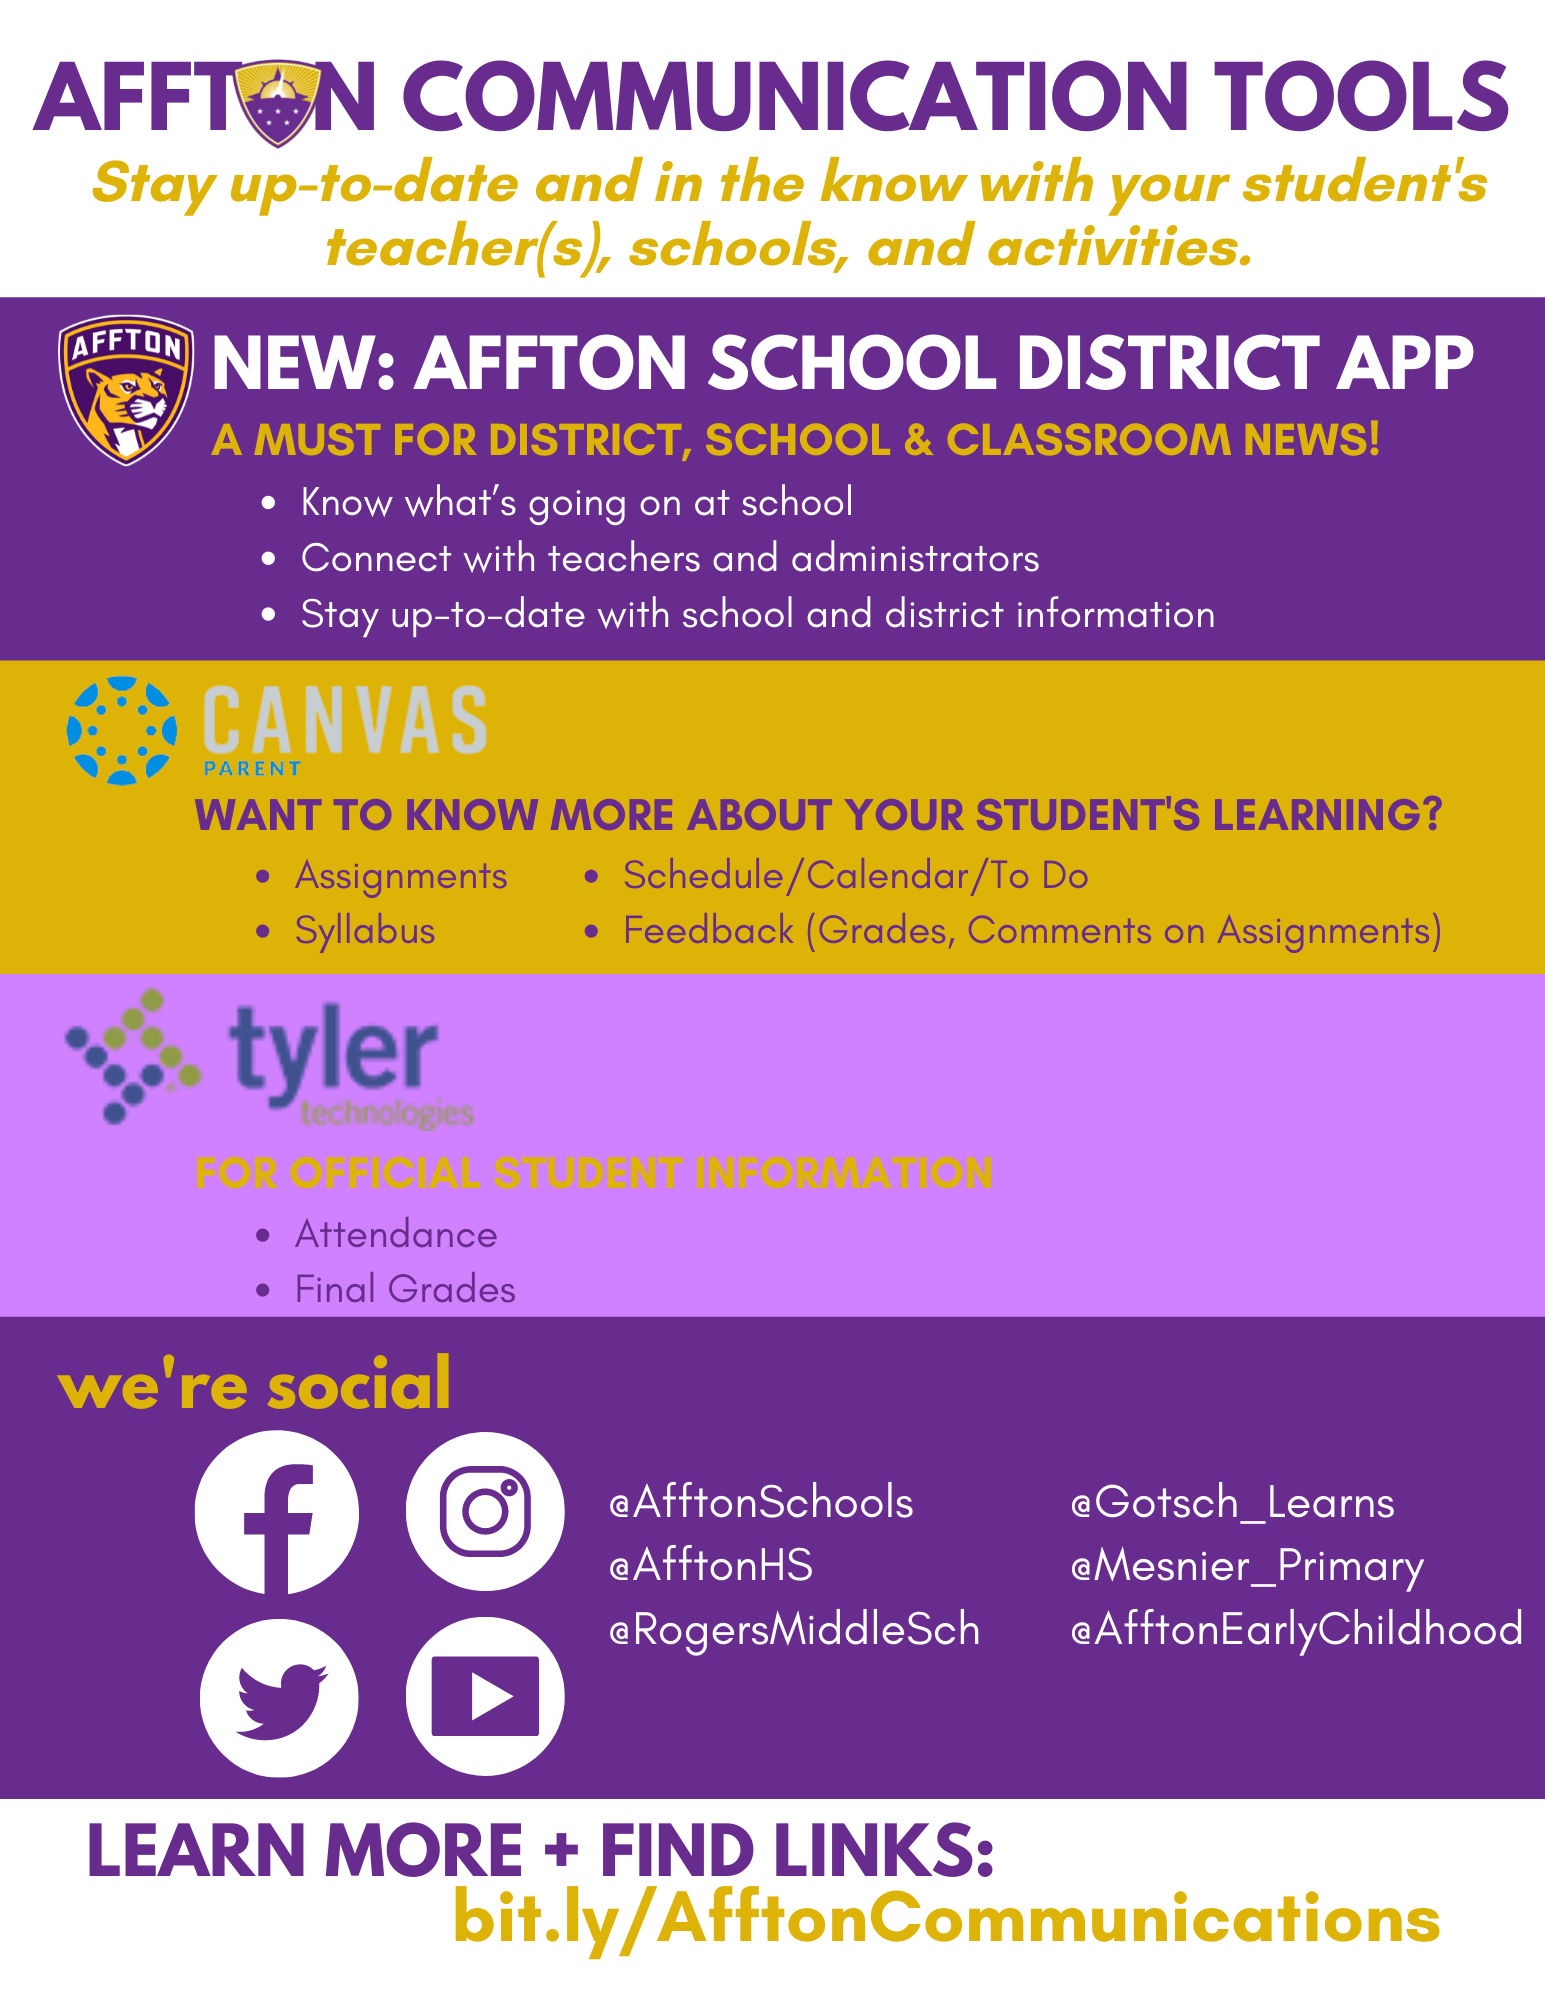 Affton Communication Tools for Families